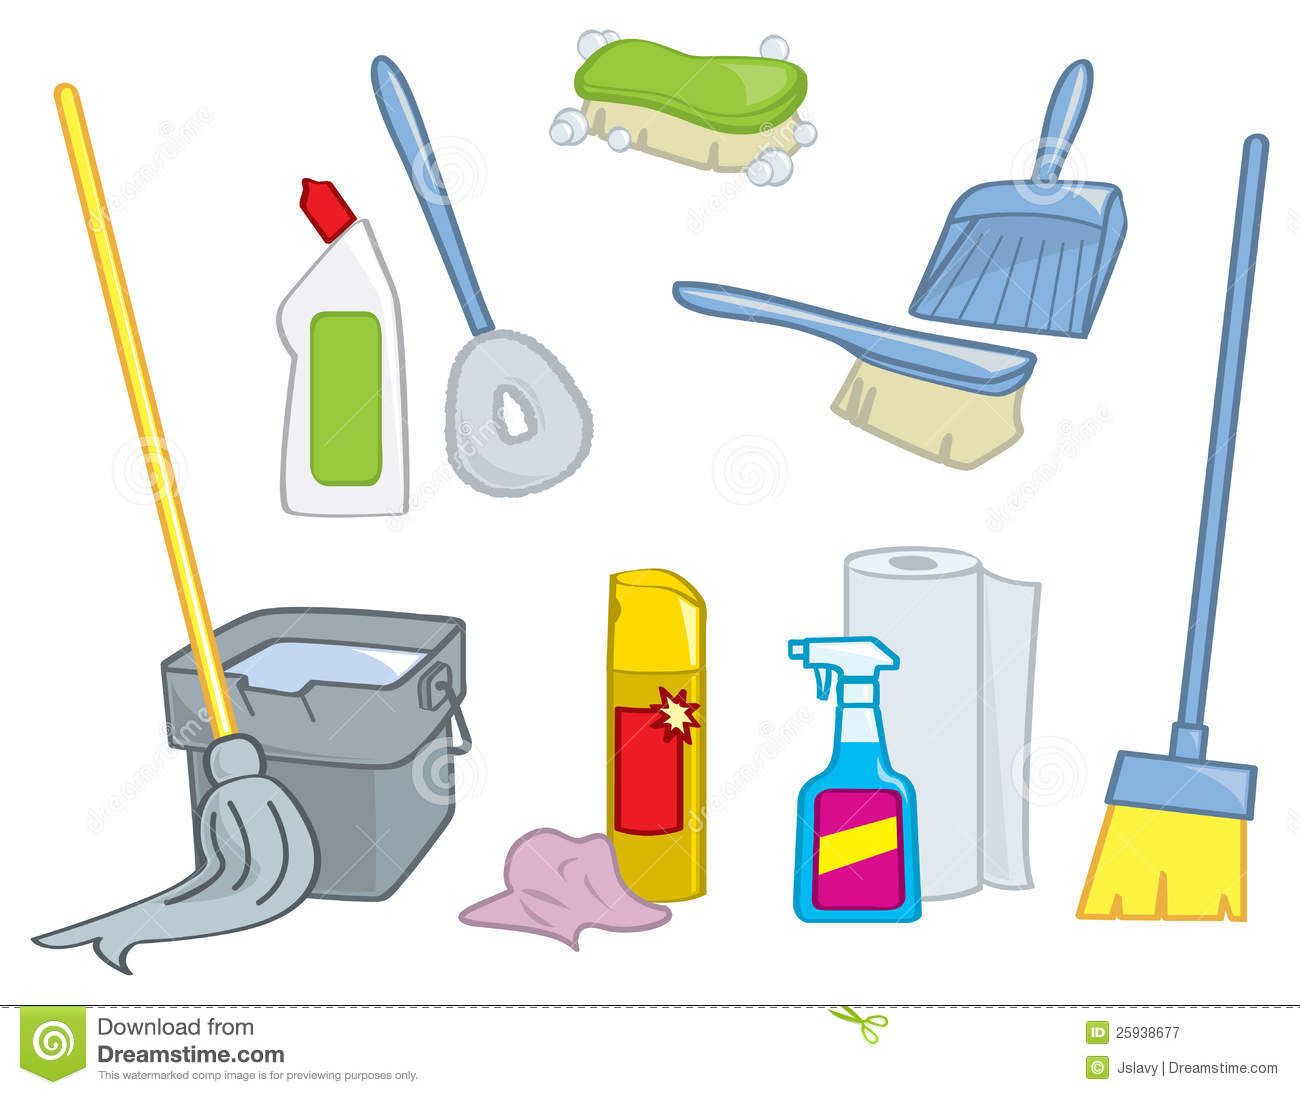 Imagen Relacionada Cleaning Supplies Cleaning Brushing Teeth